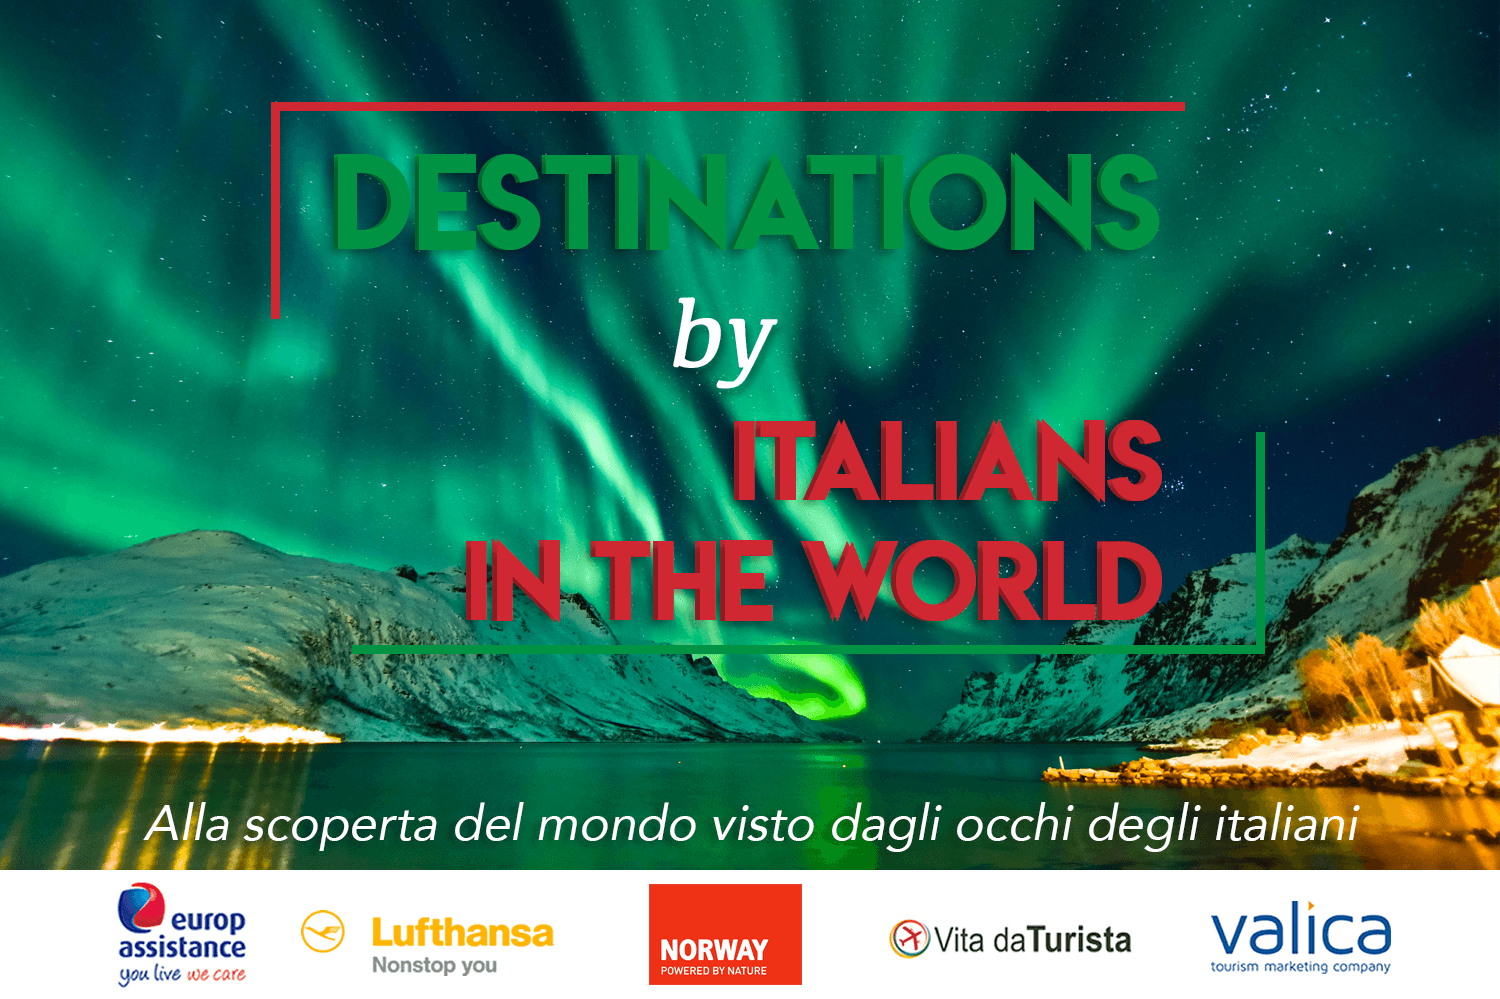 Destinations by Italians in the World, Norvegia